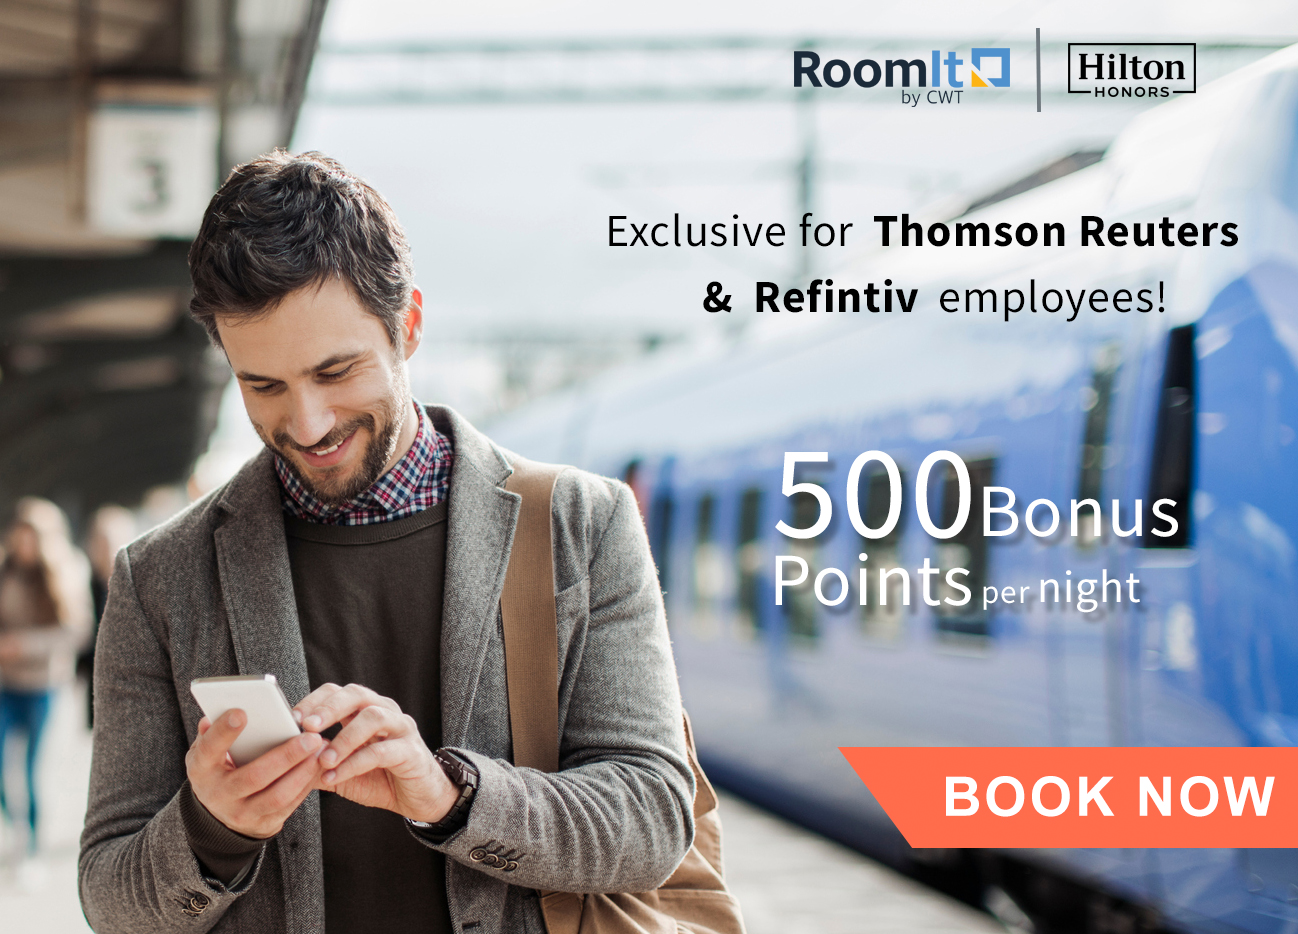 Exclusive offer for Employees of Thomson Reuters and Refinitiv